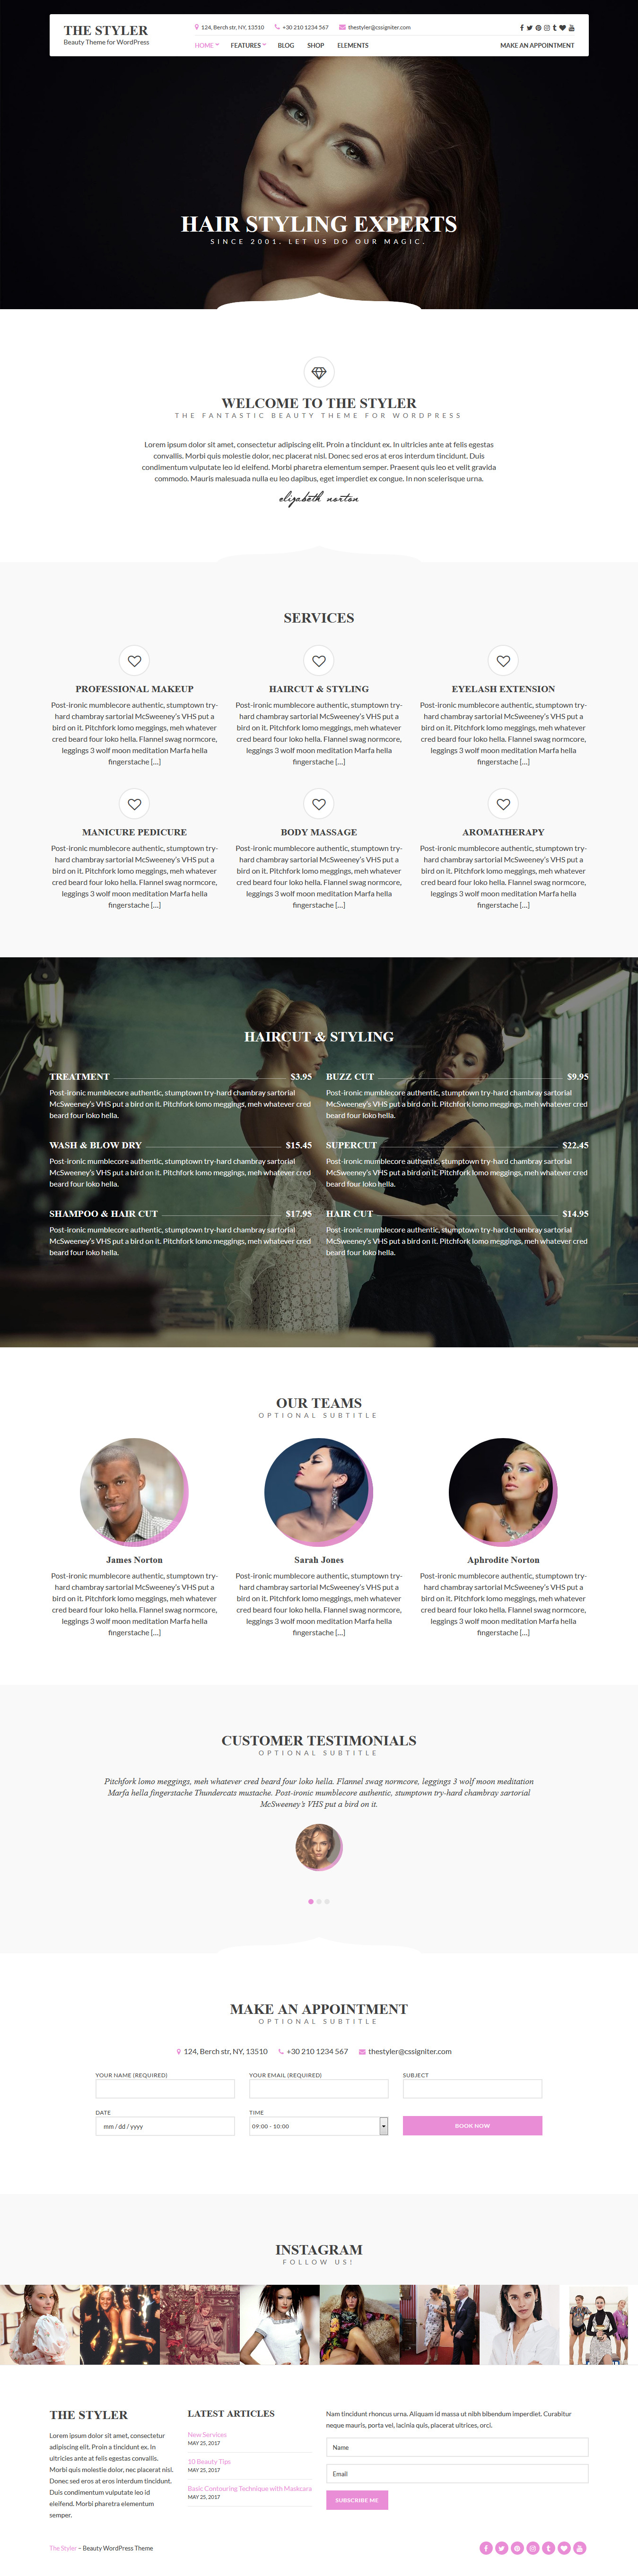 The Styler - Best Business WordPress Theme